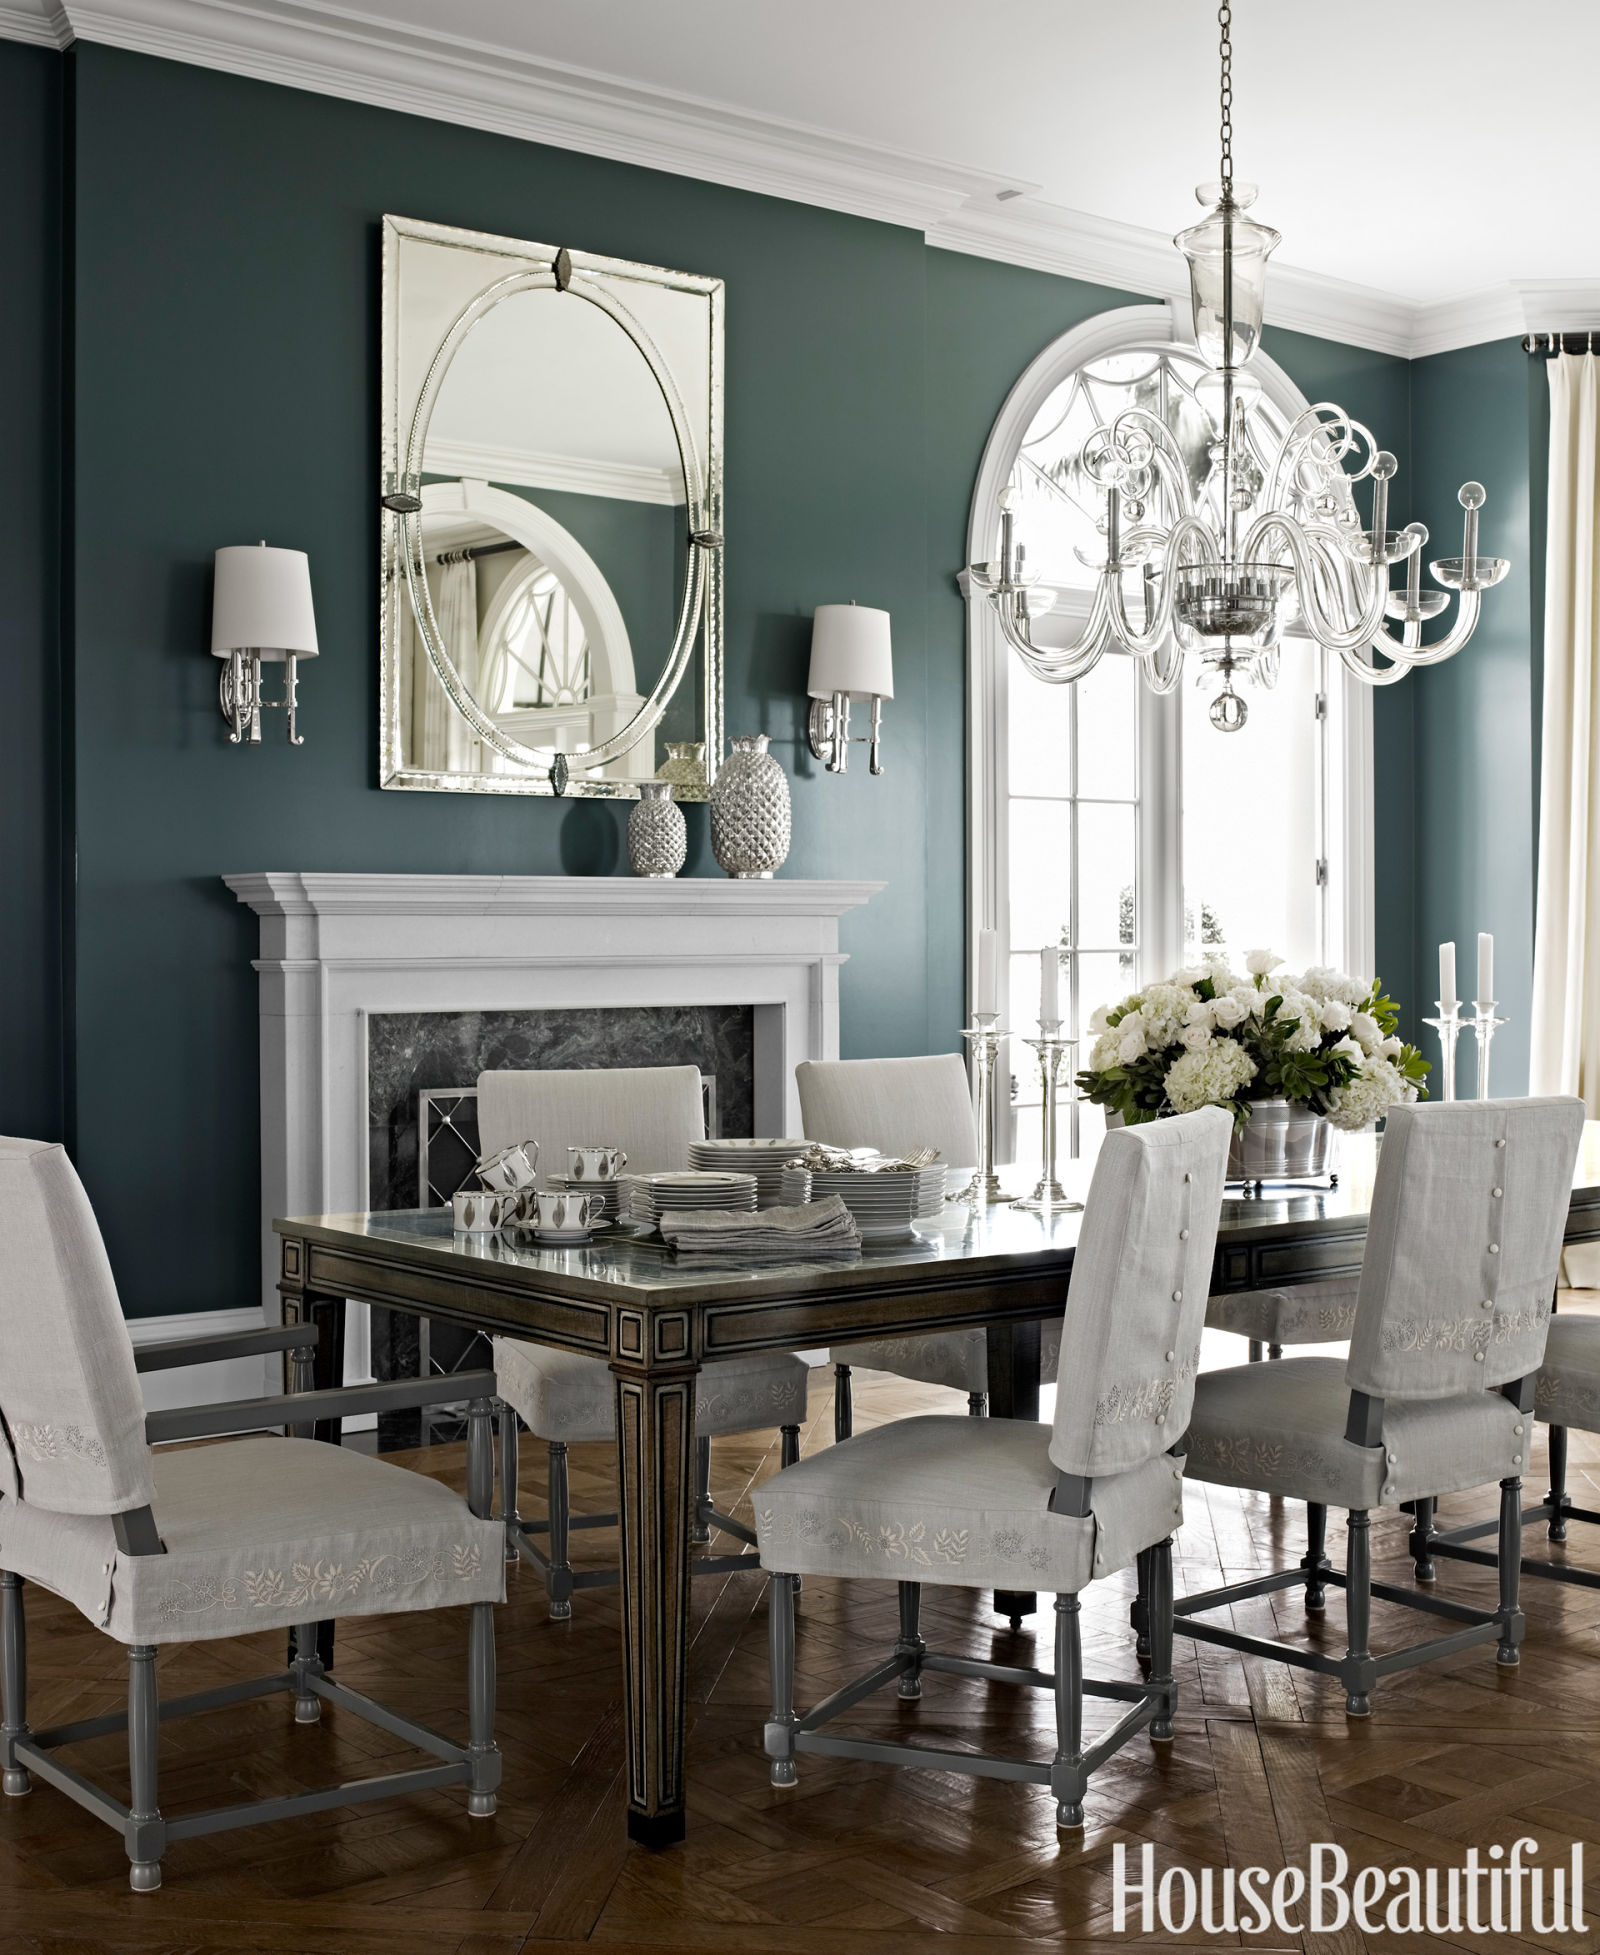 Dinning Room: Decorating With Dark Colors